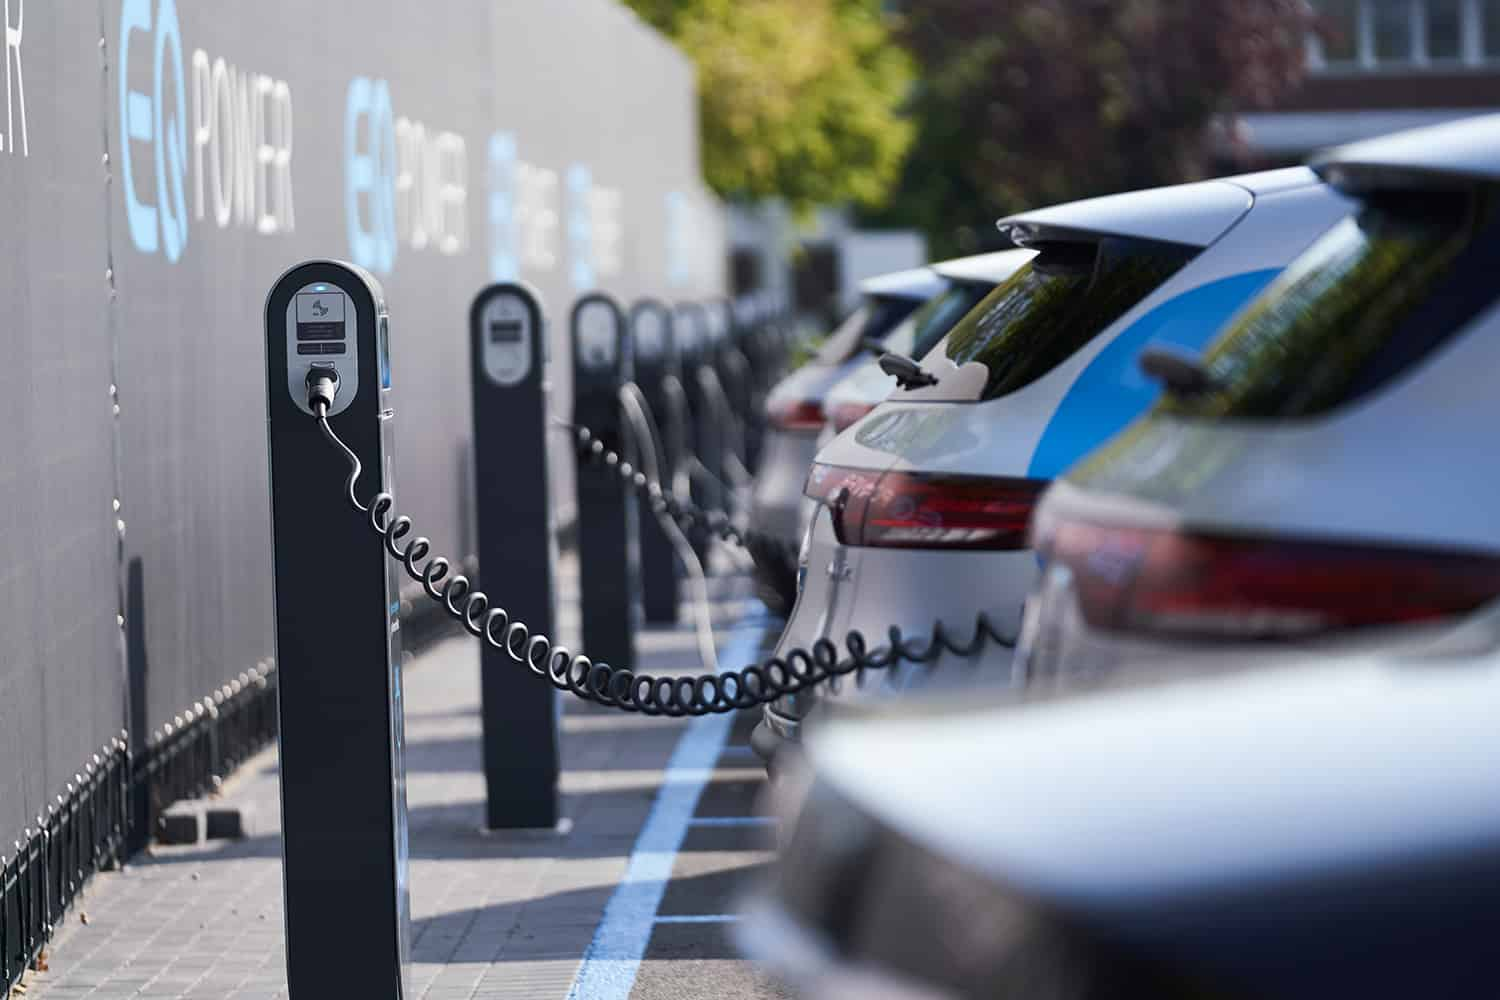 Supporting carbon neutral objectives via seamless procurement of electric vehicle charging points